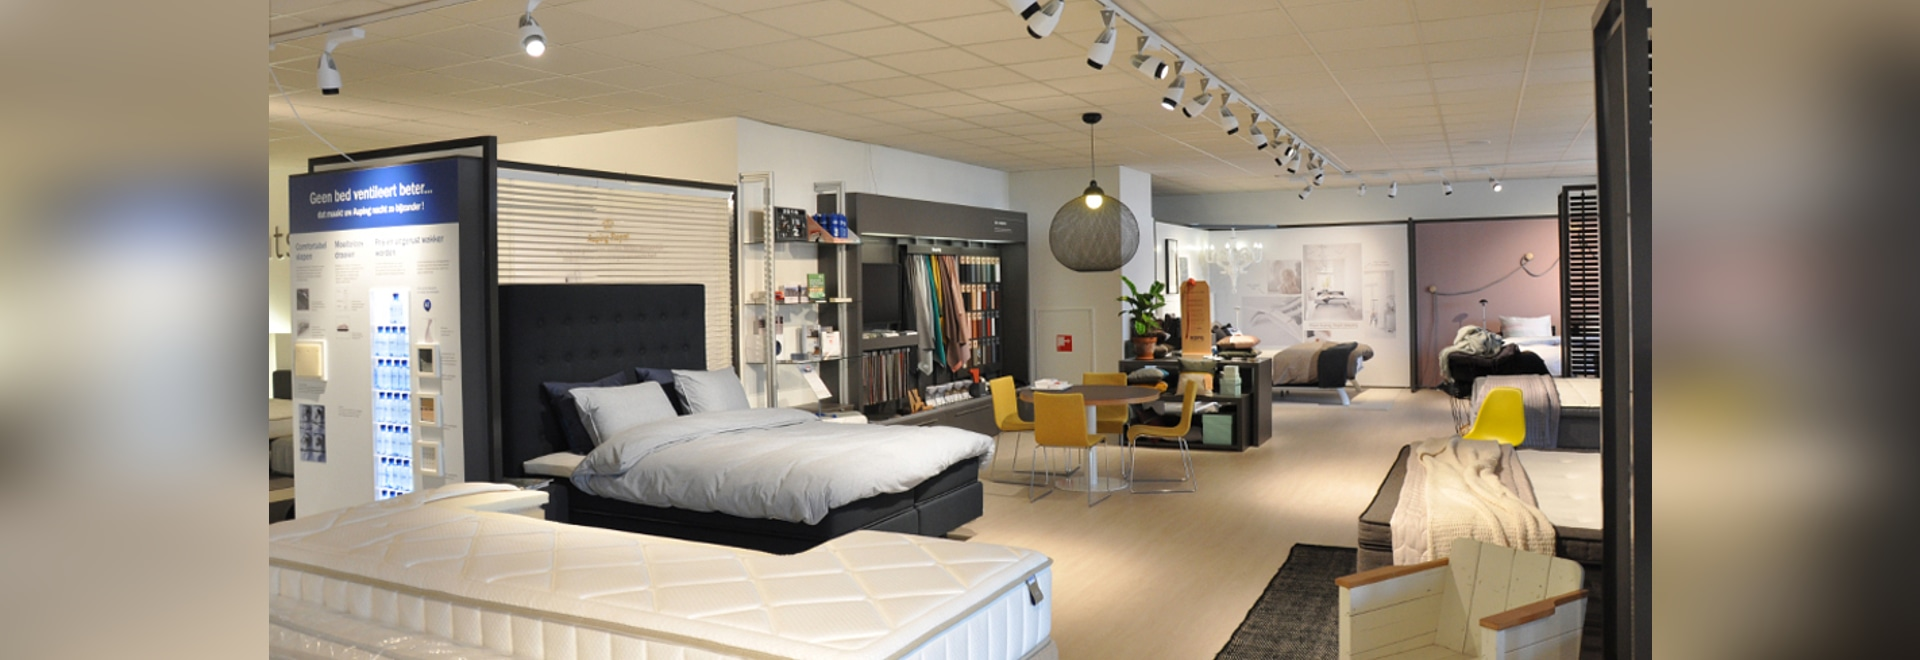 Auping showroom, The Netherlands